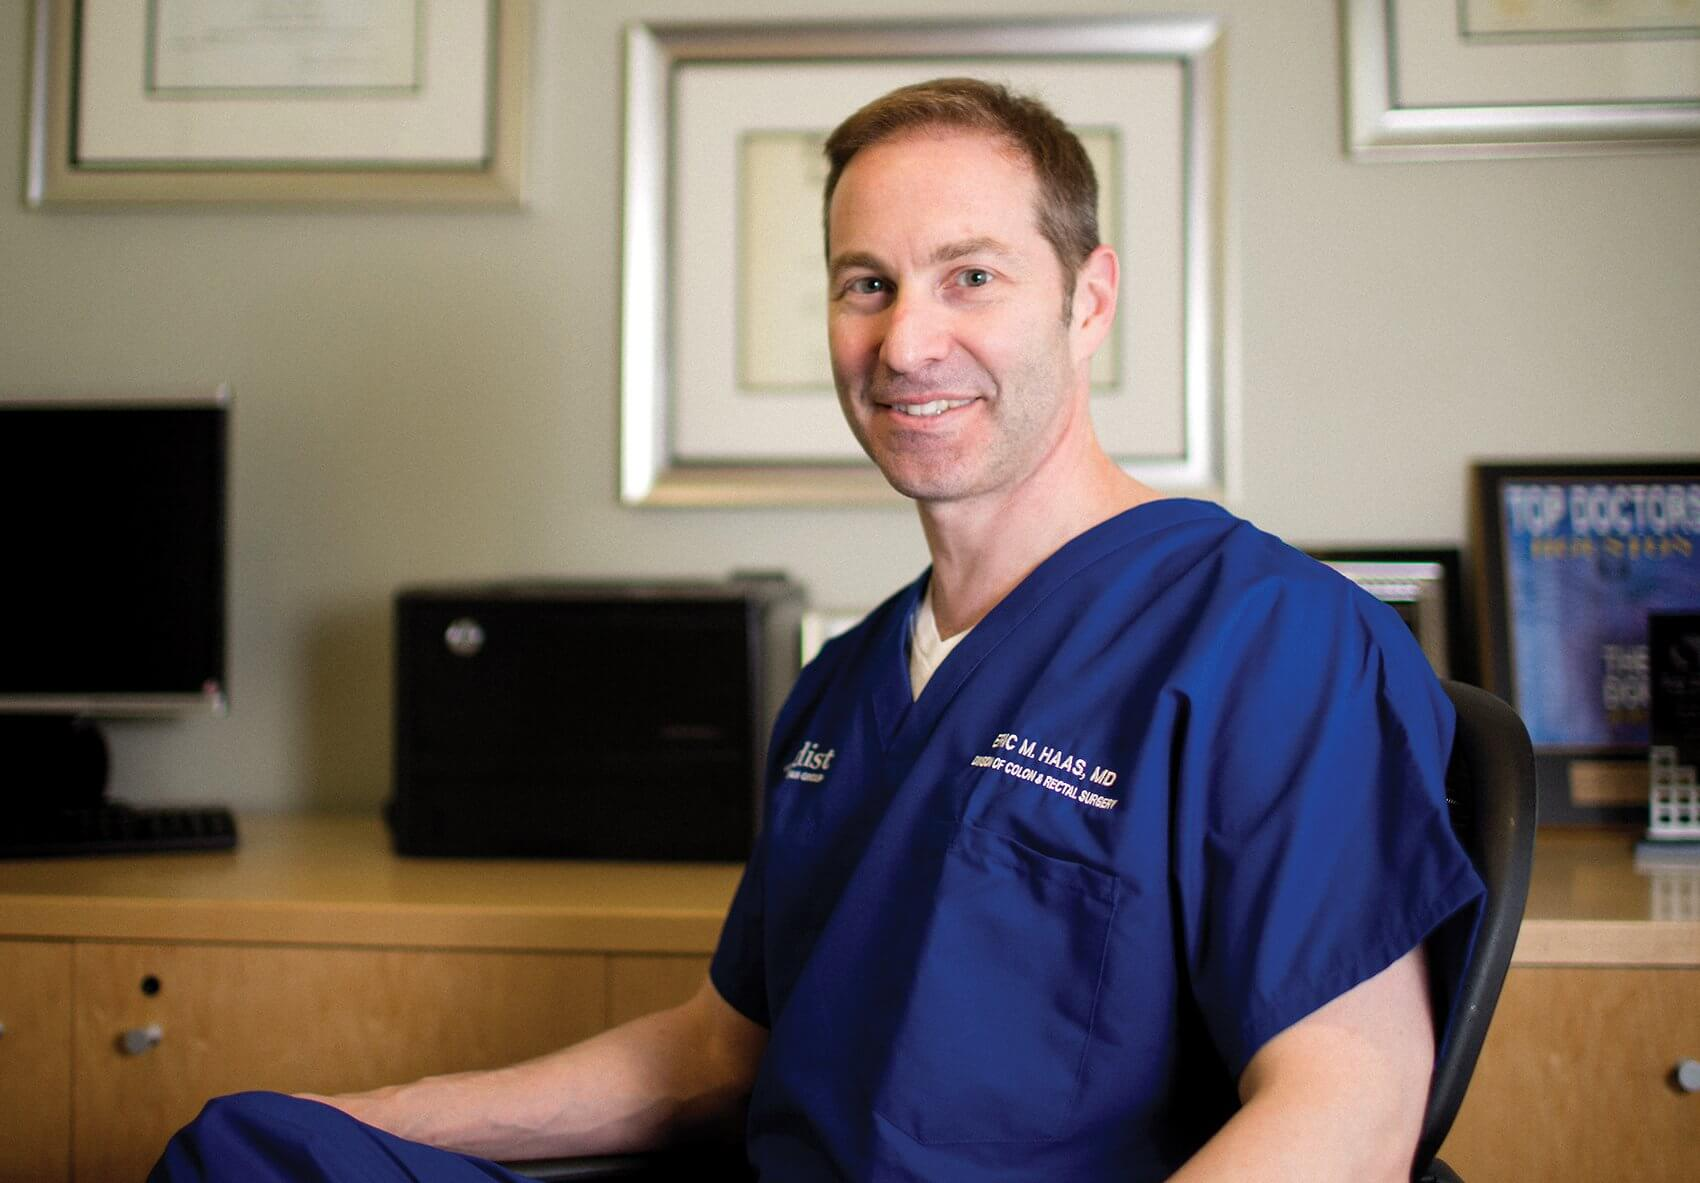 Eric Haas, M.D., division chief of colon and rectal surgery at Houston Methodist Hospital